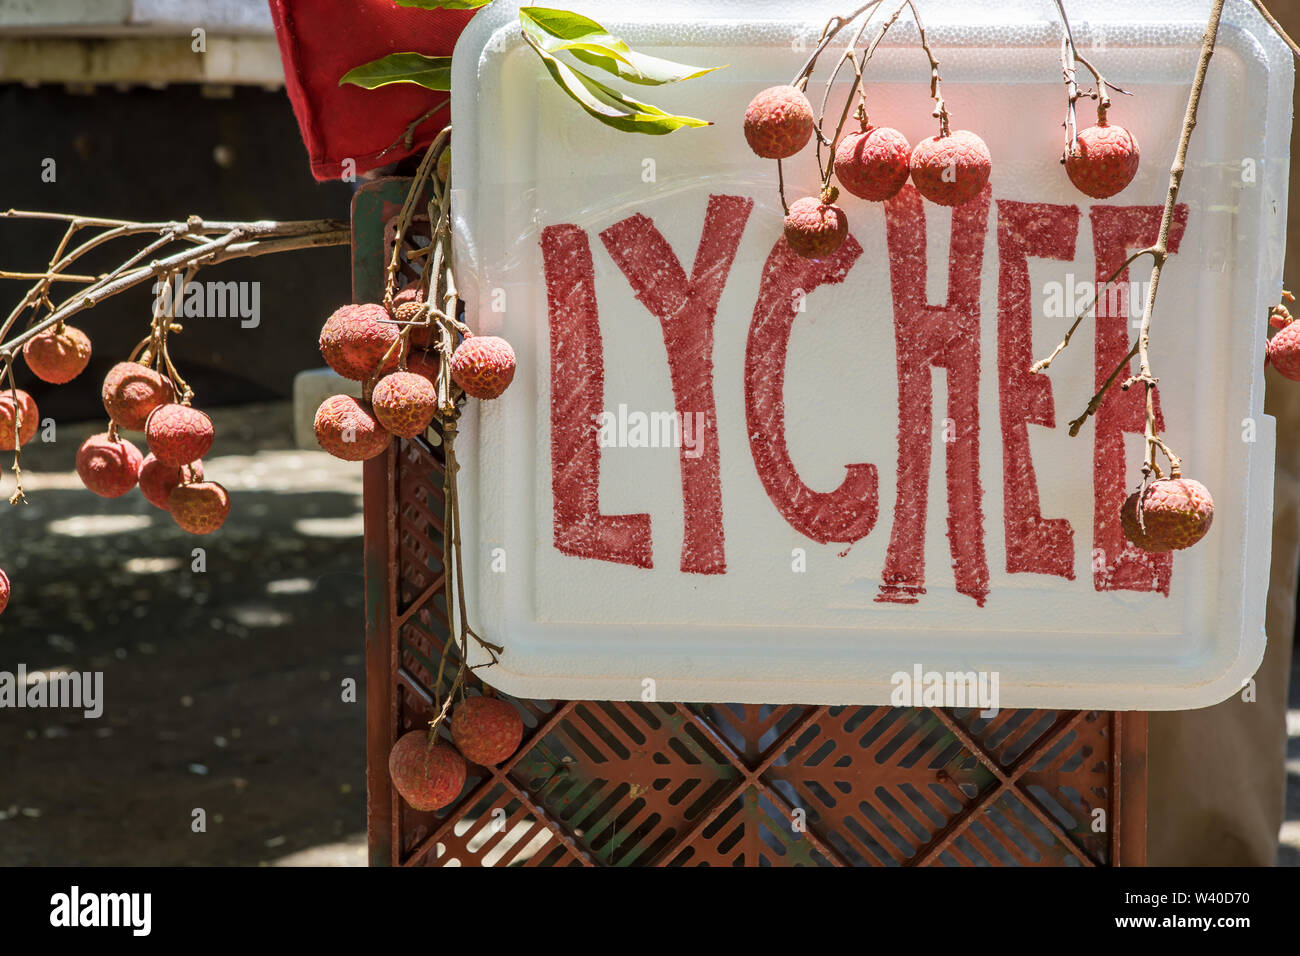 A vendor's lychee sign near the beach in Hilo, Hawaii - Stock Image